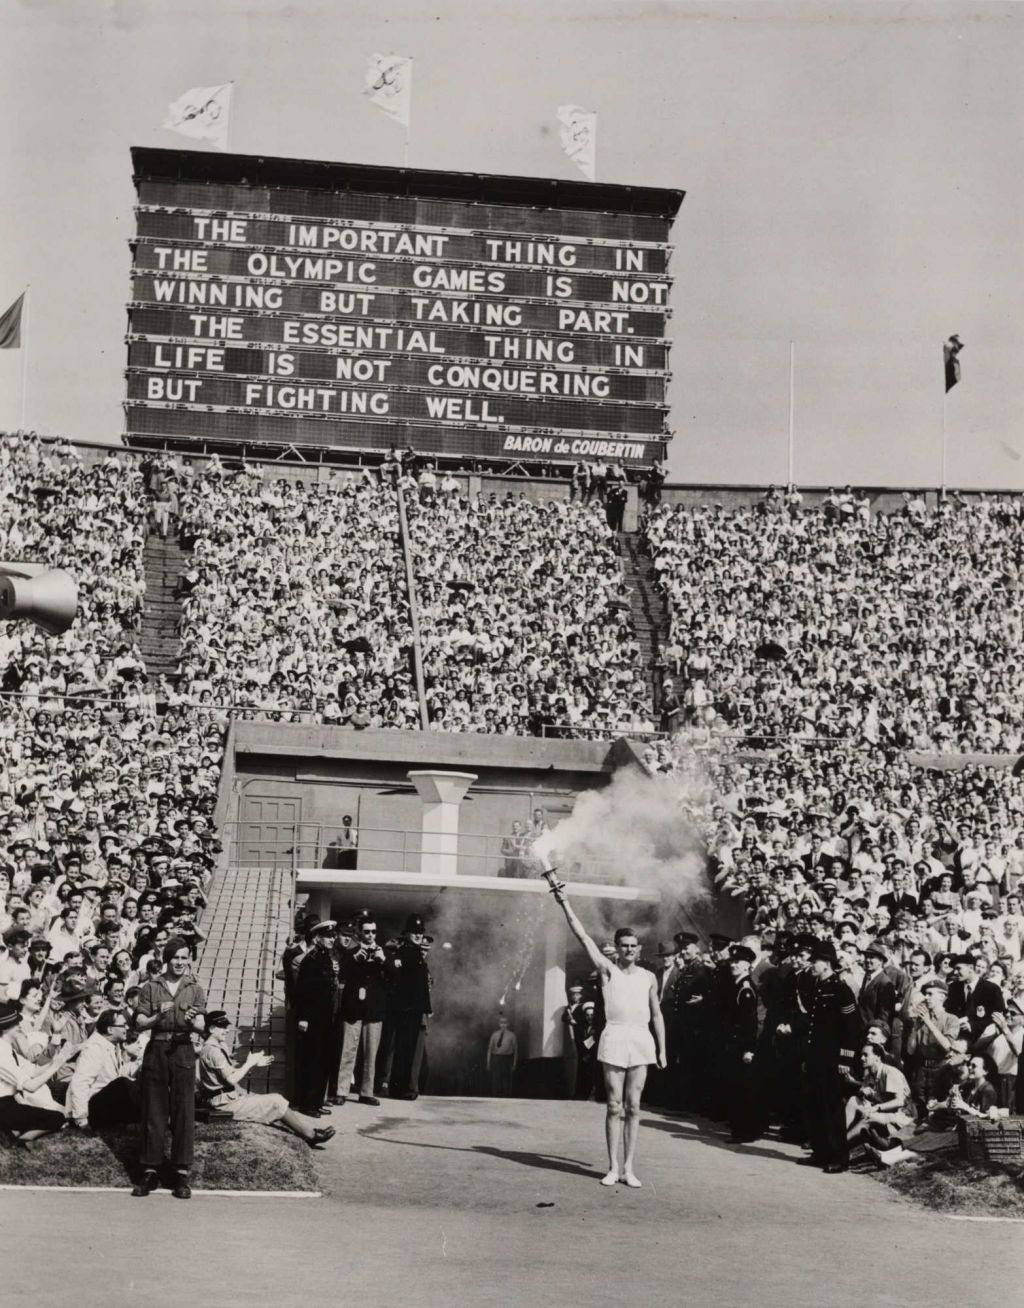 Torch-bearer arrives at opening ceremony, Olympic Games, London, 1948. National Media Museum, No known Copyright, https://www.flickr.com/photos/nationalmediamuseum/7649949614/